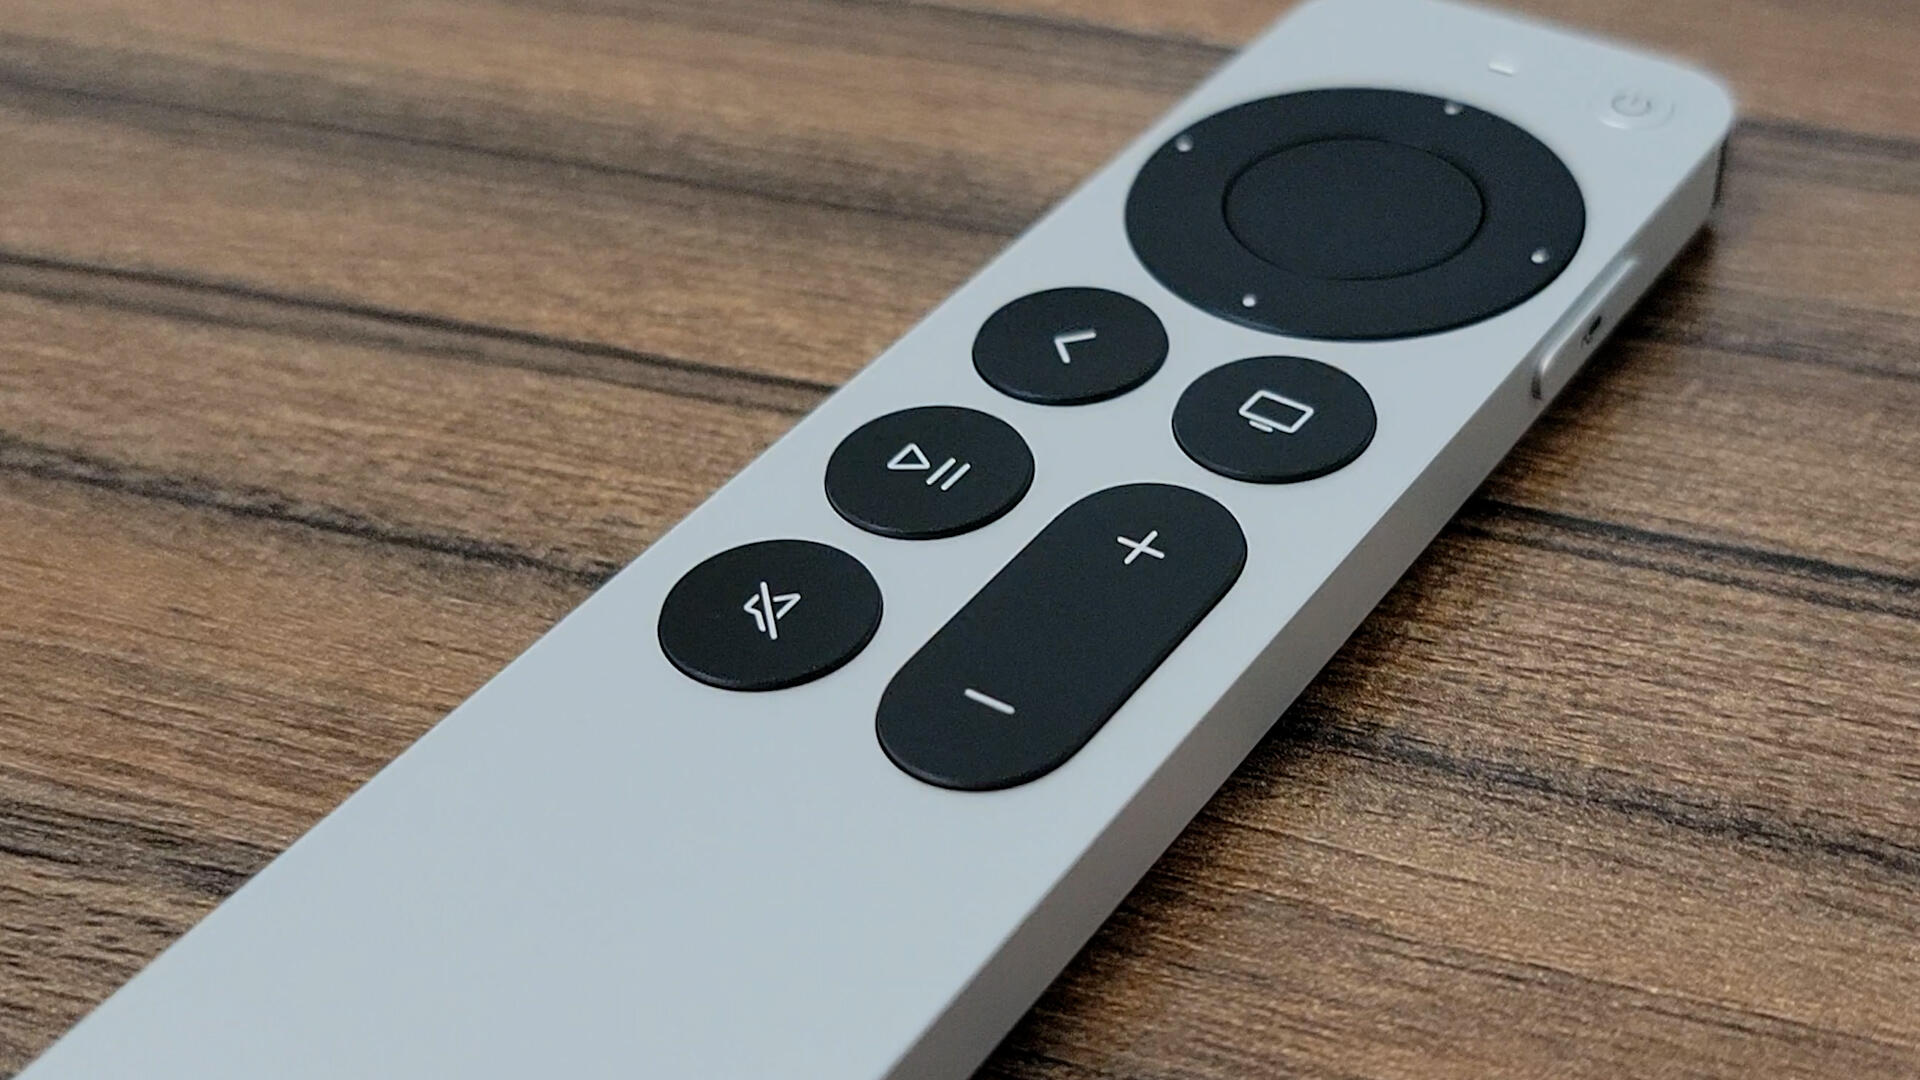 Video: Apple TV's new remote is the upgrade we needed